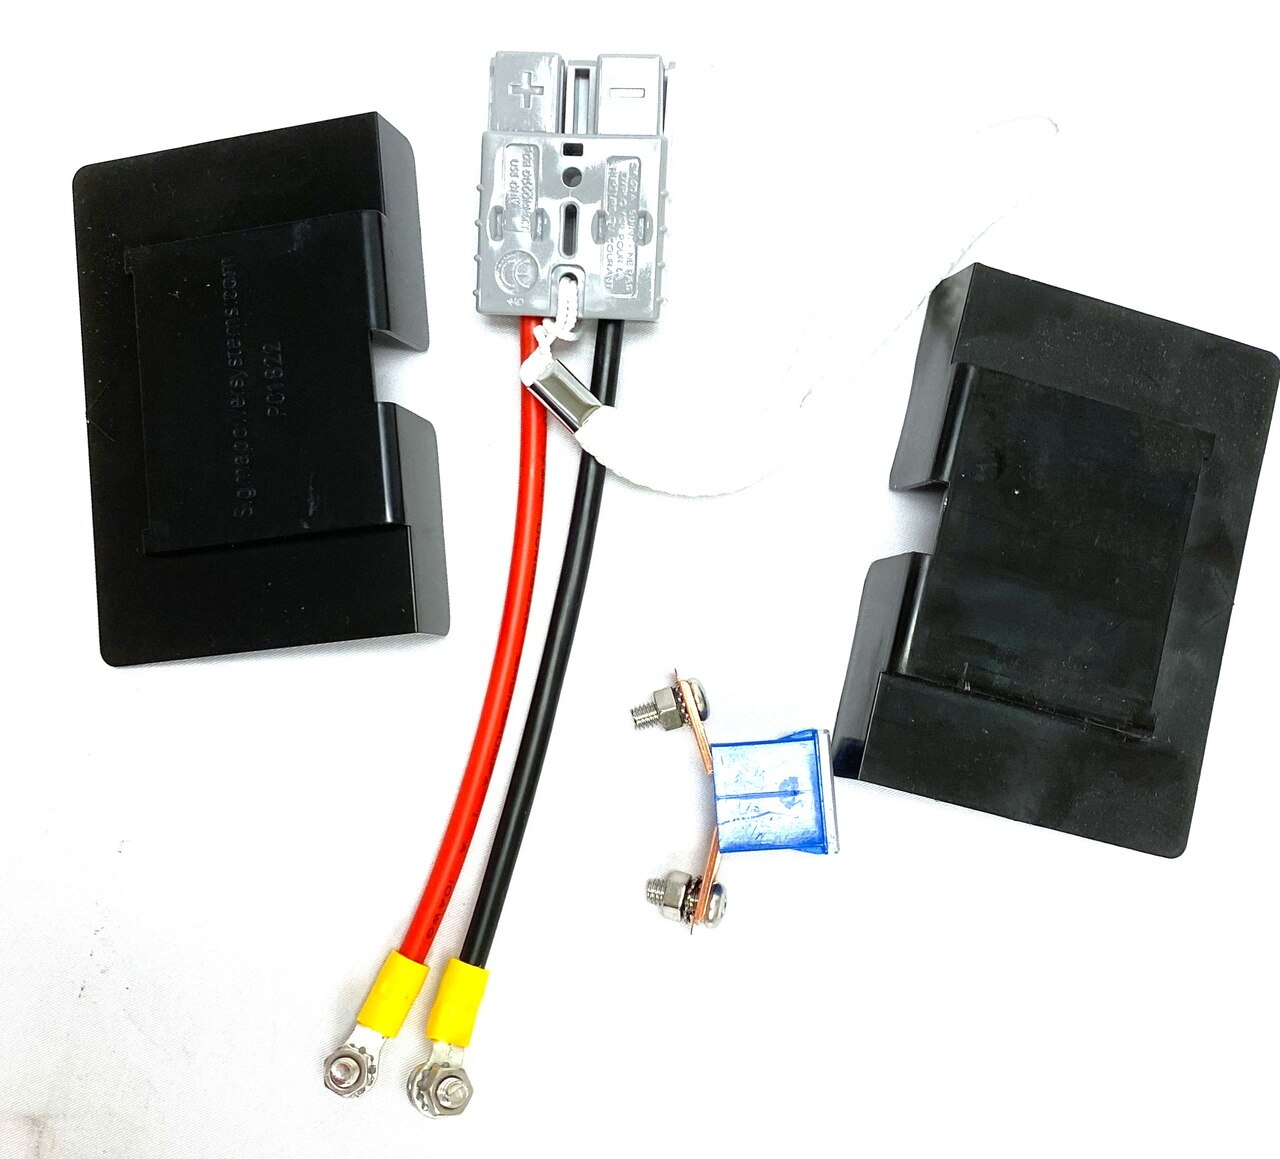 8 Pack SPS Brand Complete Wire Harness with Terminal Covers and Fuse for APC SU1400X106 RBC7 Battery Cartridge